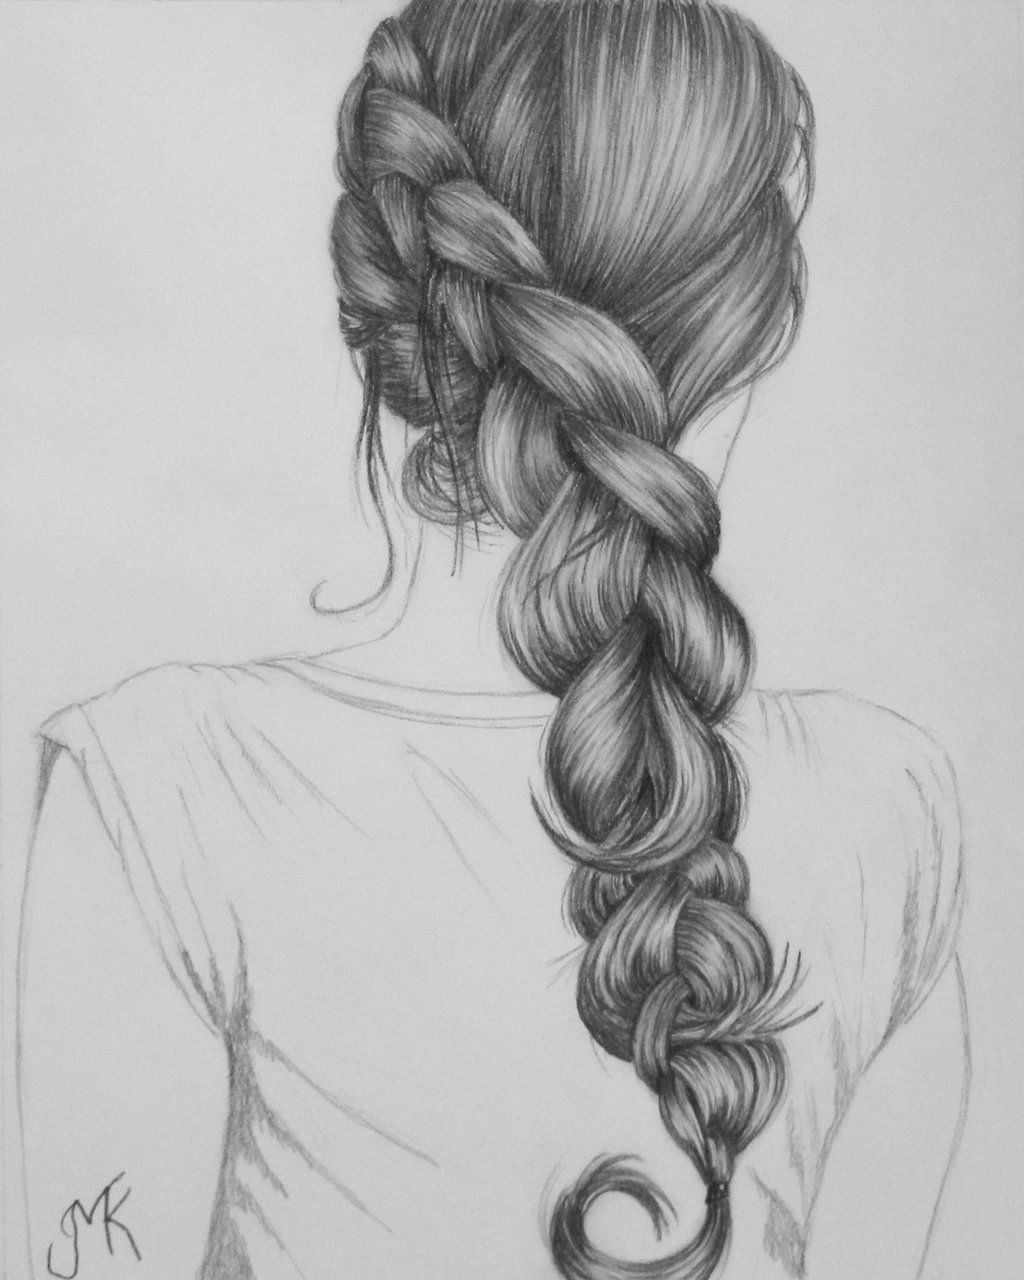 Groovy Search Hair Drawings And Hairstyles On Pinterest Short Hairstyles Gunalazisus